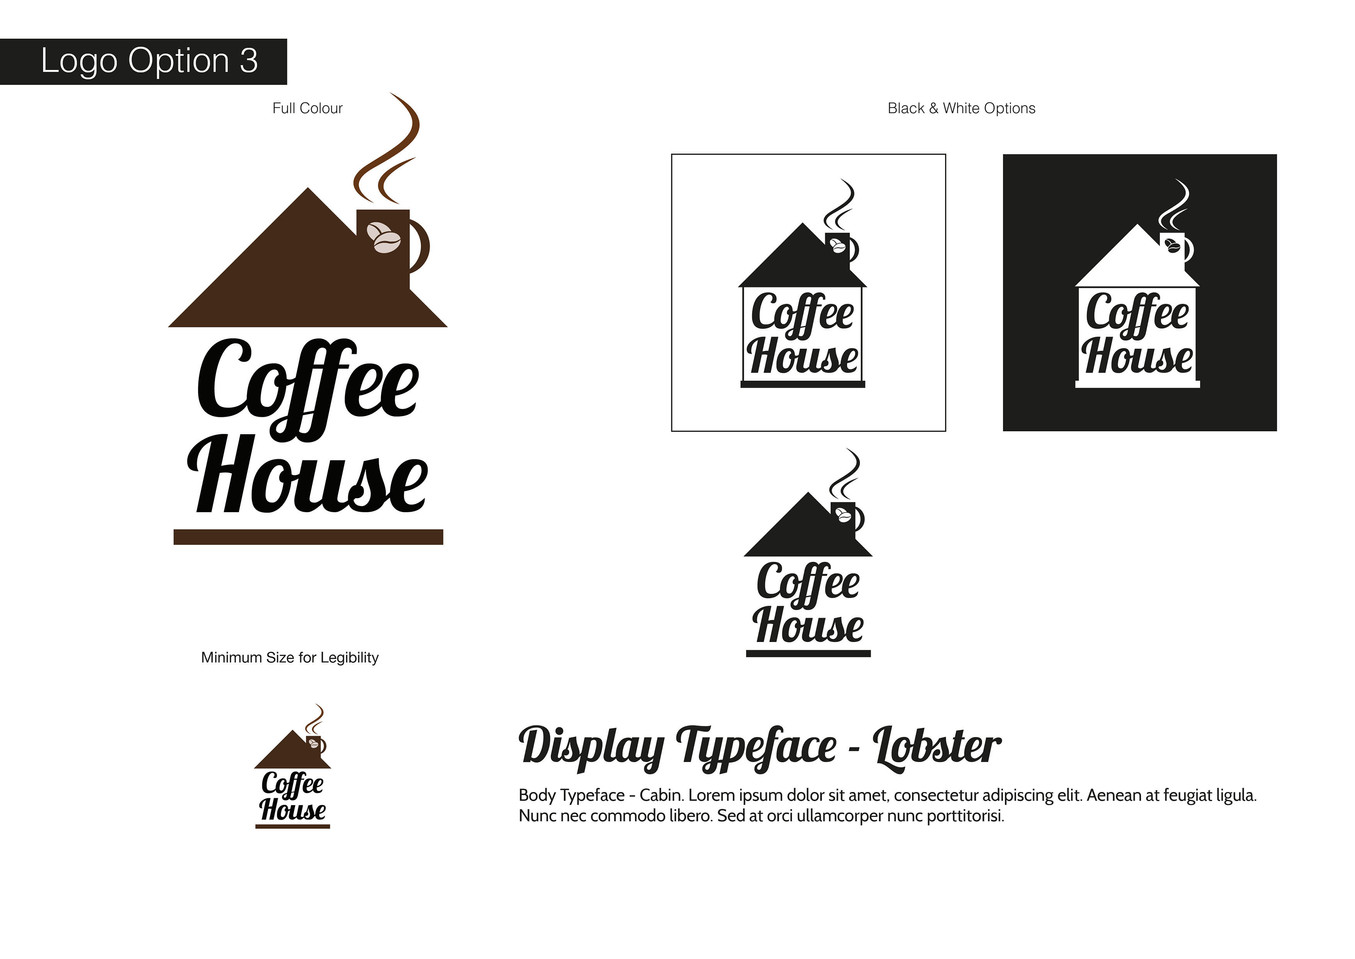 Coffee House Visual Identity - Development 3